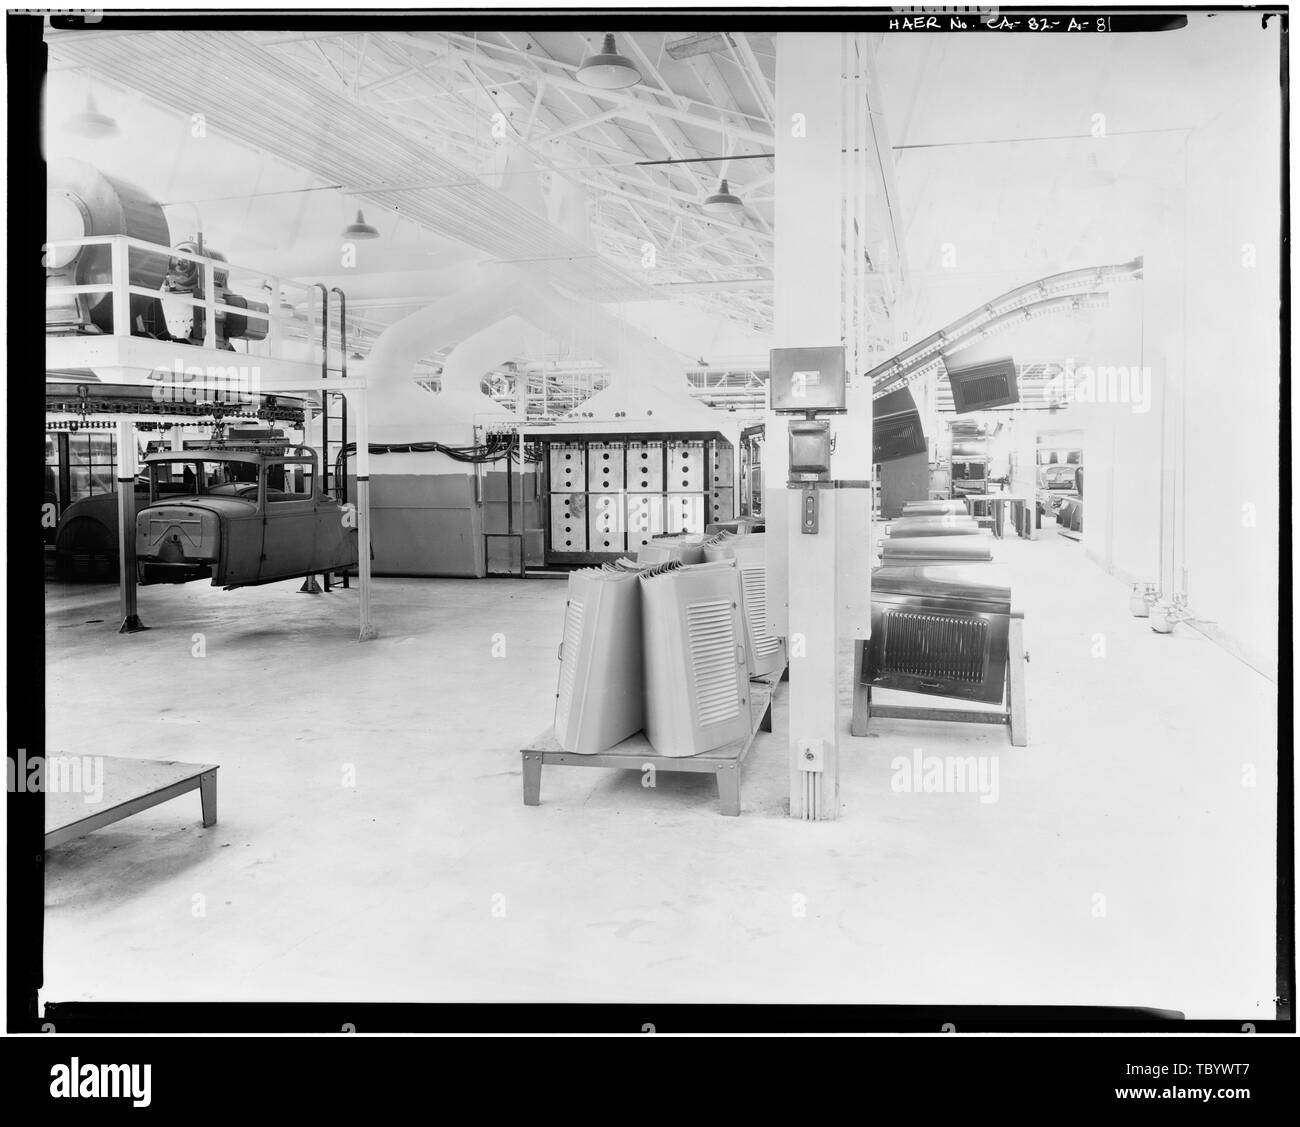 Neg. Nr. F 63, Apr 13, 1930, INTERIORASSEMBLY GEBÄUDE, HAUBE ABTEILUNG Ford Motor Company Long Beach Montagewerk, Assembly Building, 700 Henry Ford Avenue, Long Beach, Los Angeles County, CA Stockbild